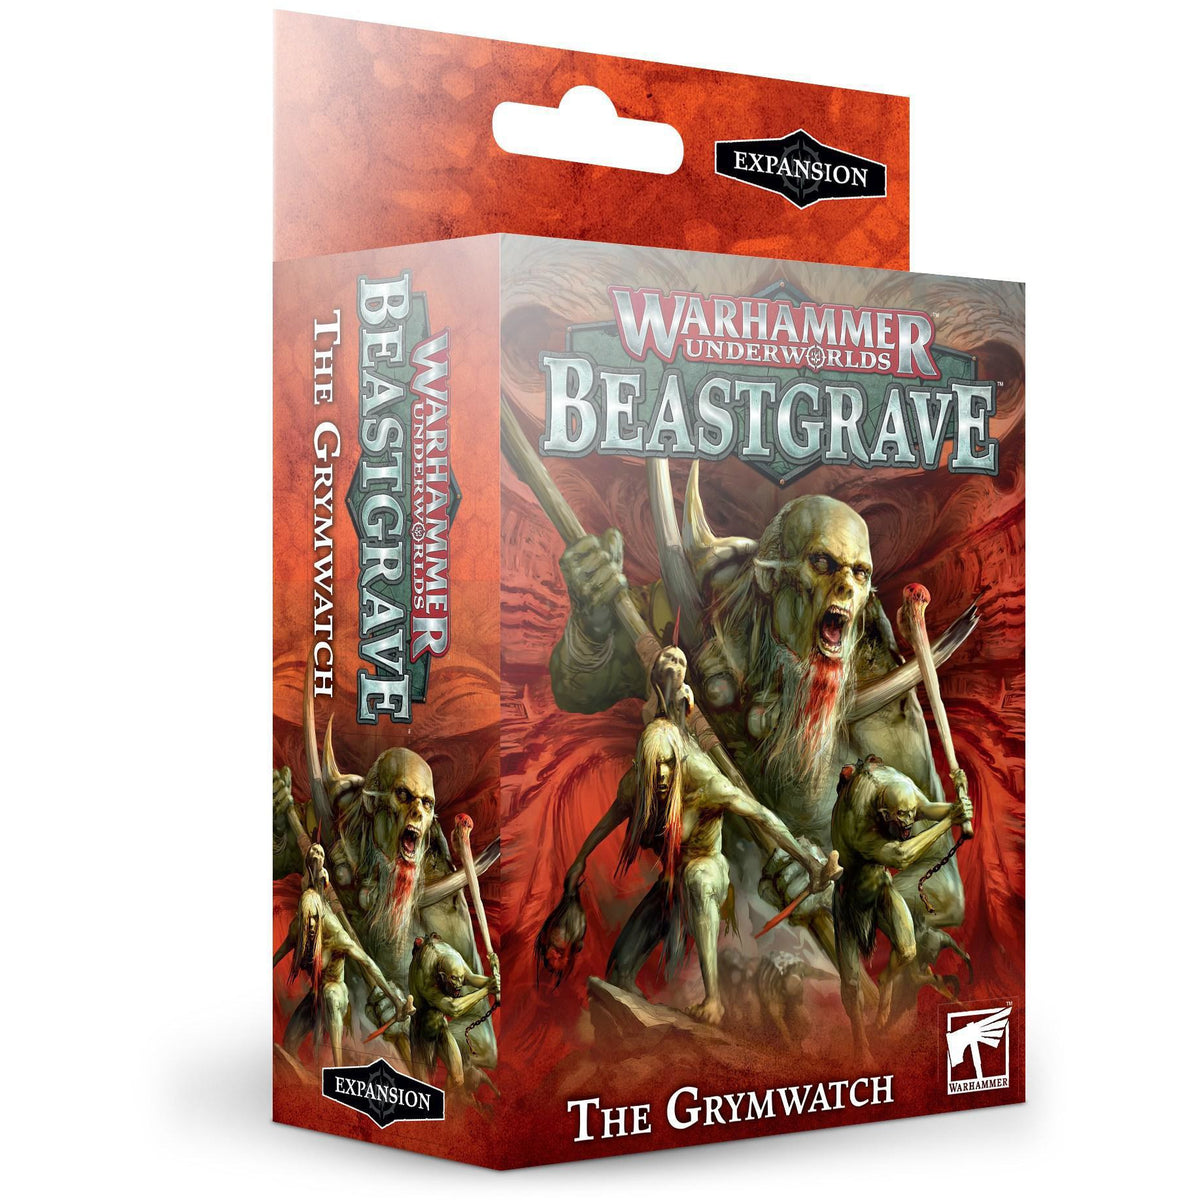 WARHAMMER UNDERWORLDS BEASTGRAVE - THE GRYMWATCH